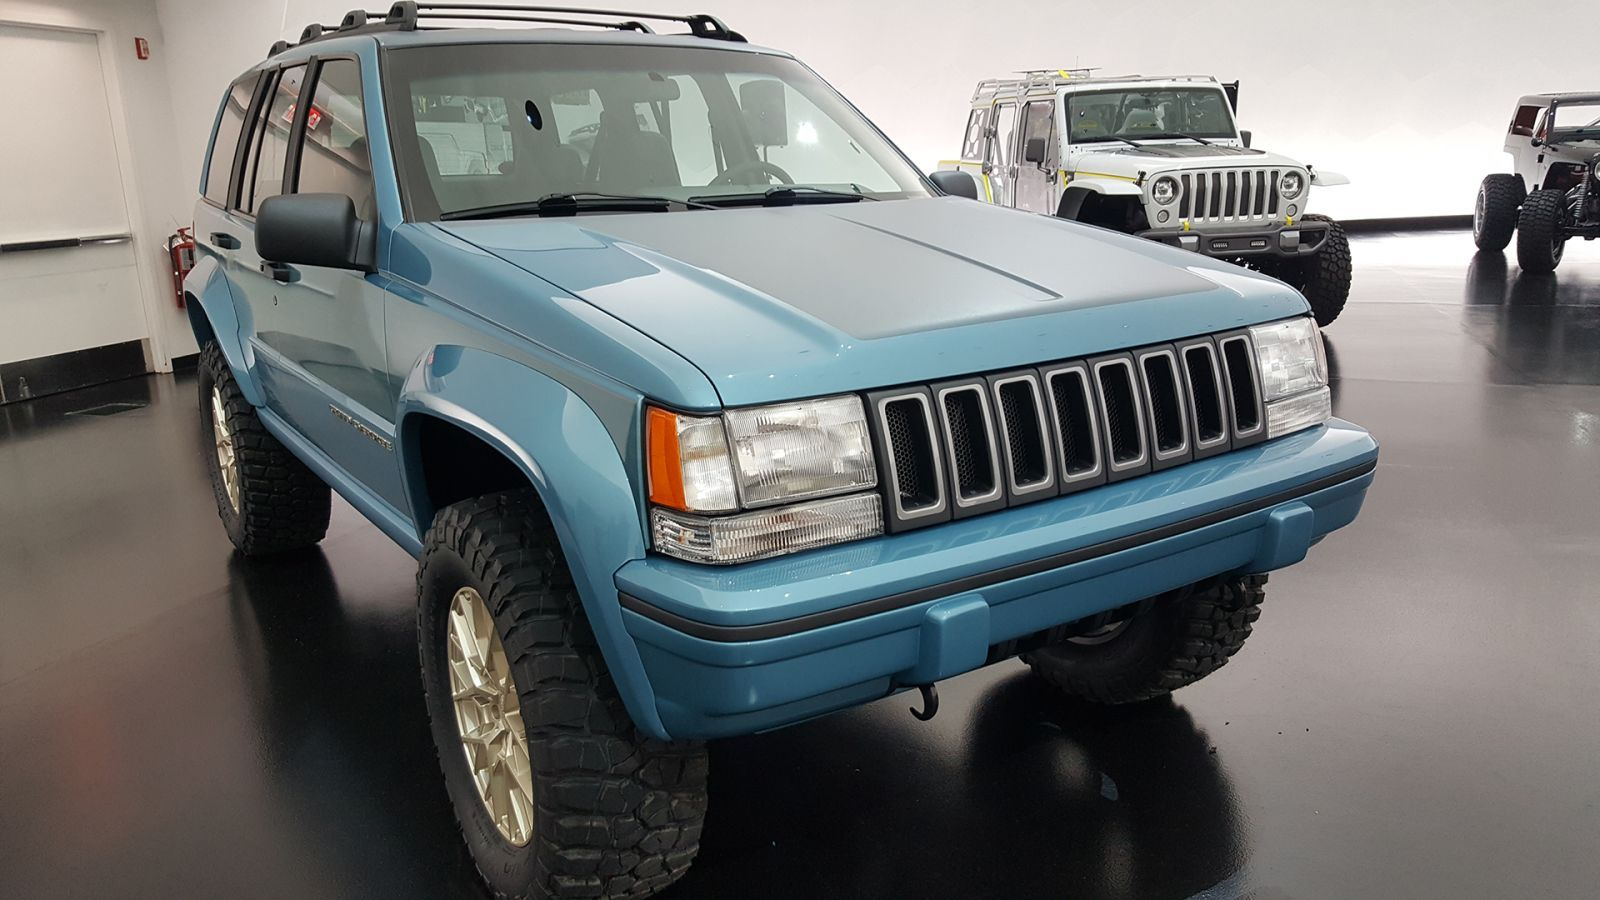 It's the Easter Jeep Safari, the time of year when Jeep teases the world with unattainable concept vehicles that us ordinary humans will never be able to attain. But this year is different. Jeep did what we all would do and bought a '90s ZJ Grand Cherokee off of Craigslist.